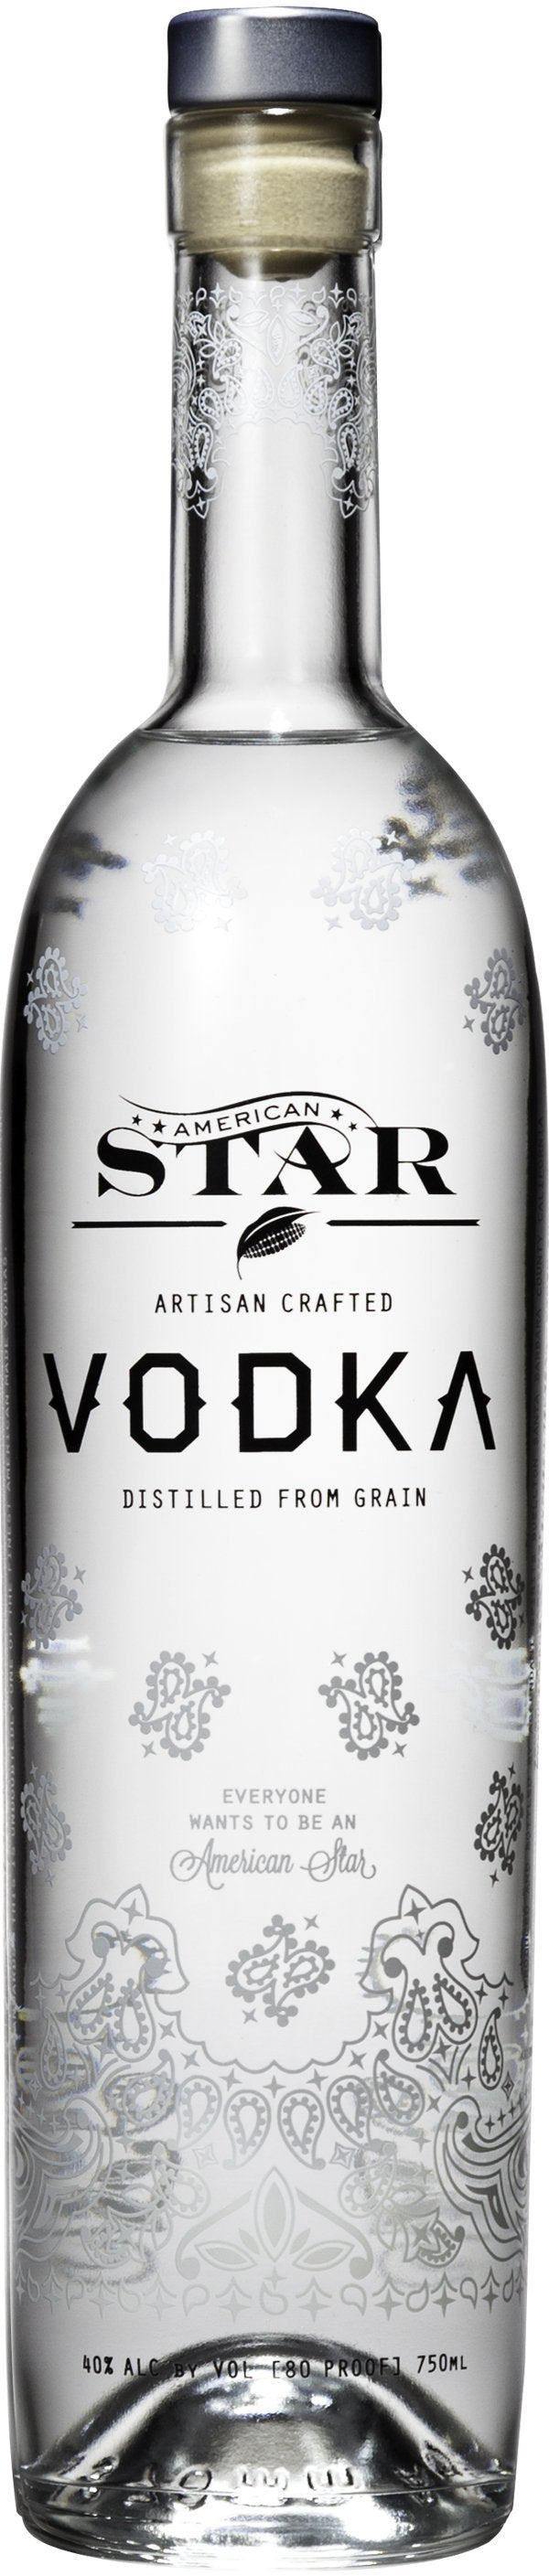 American Star Vodka 750ml